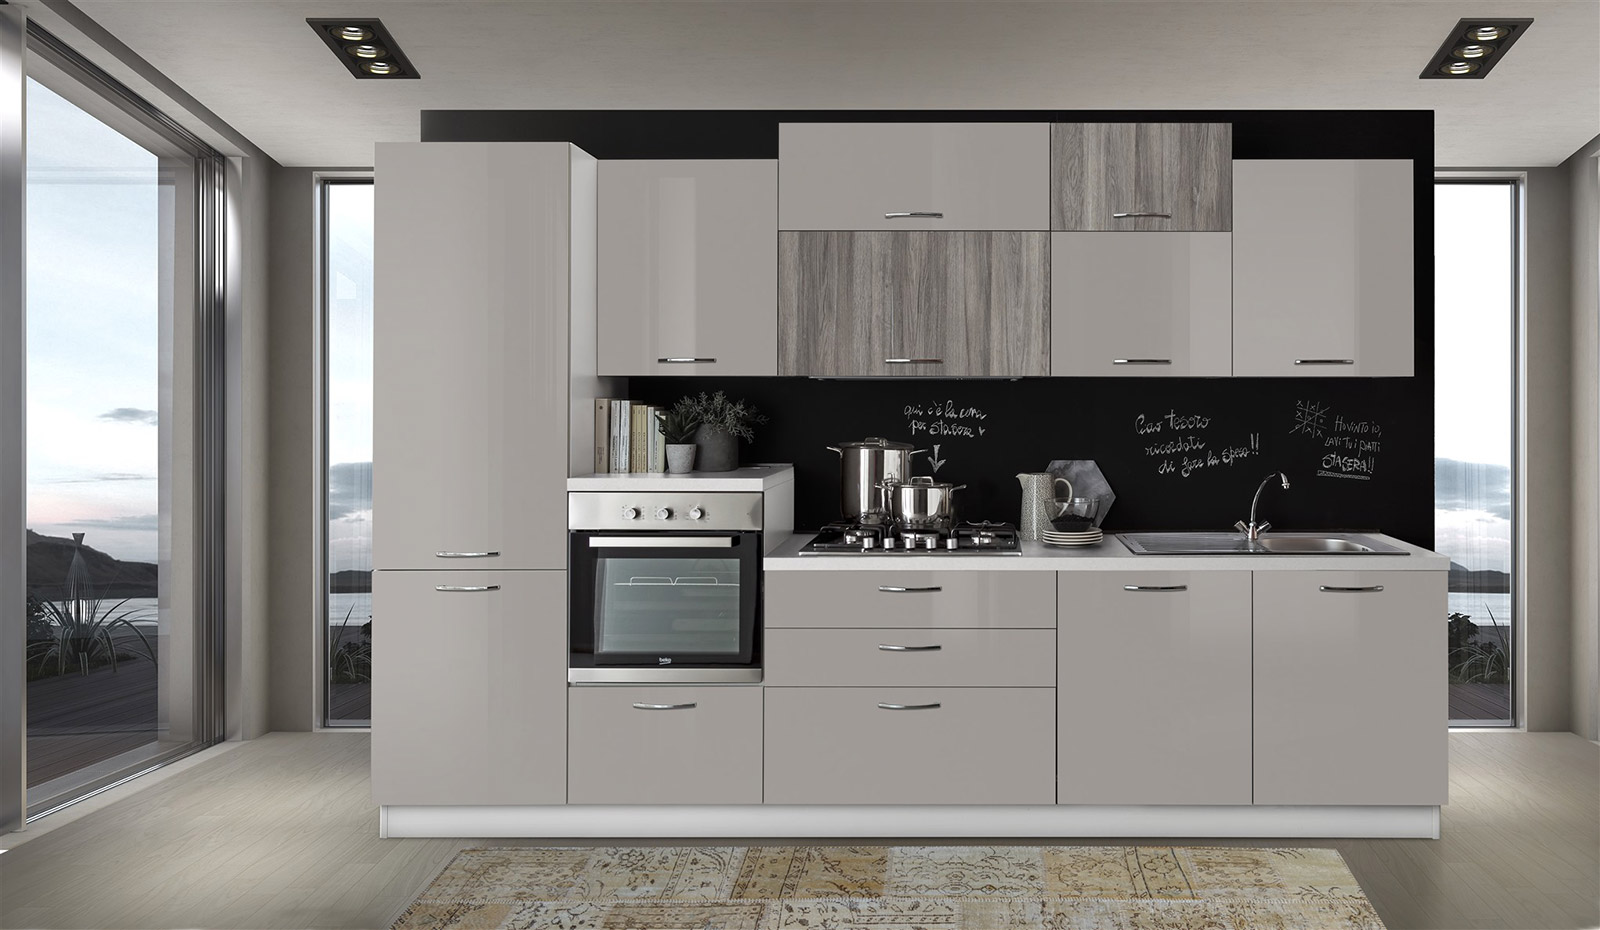 Cucine bloccate cucina astra with cucine bloccate latest for Costo cucina completa